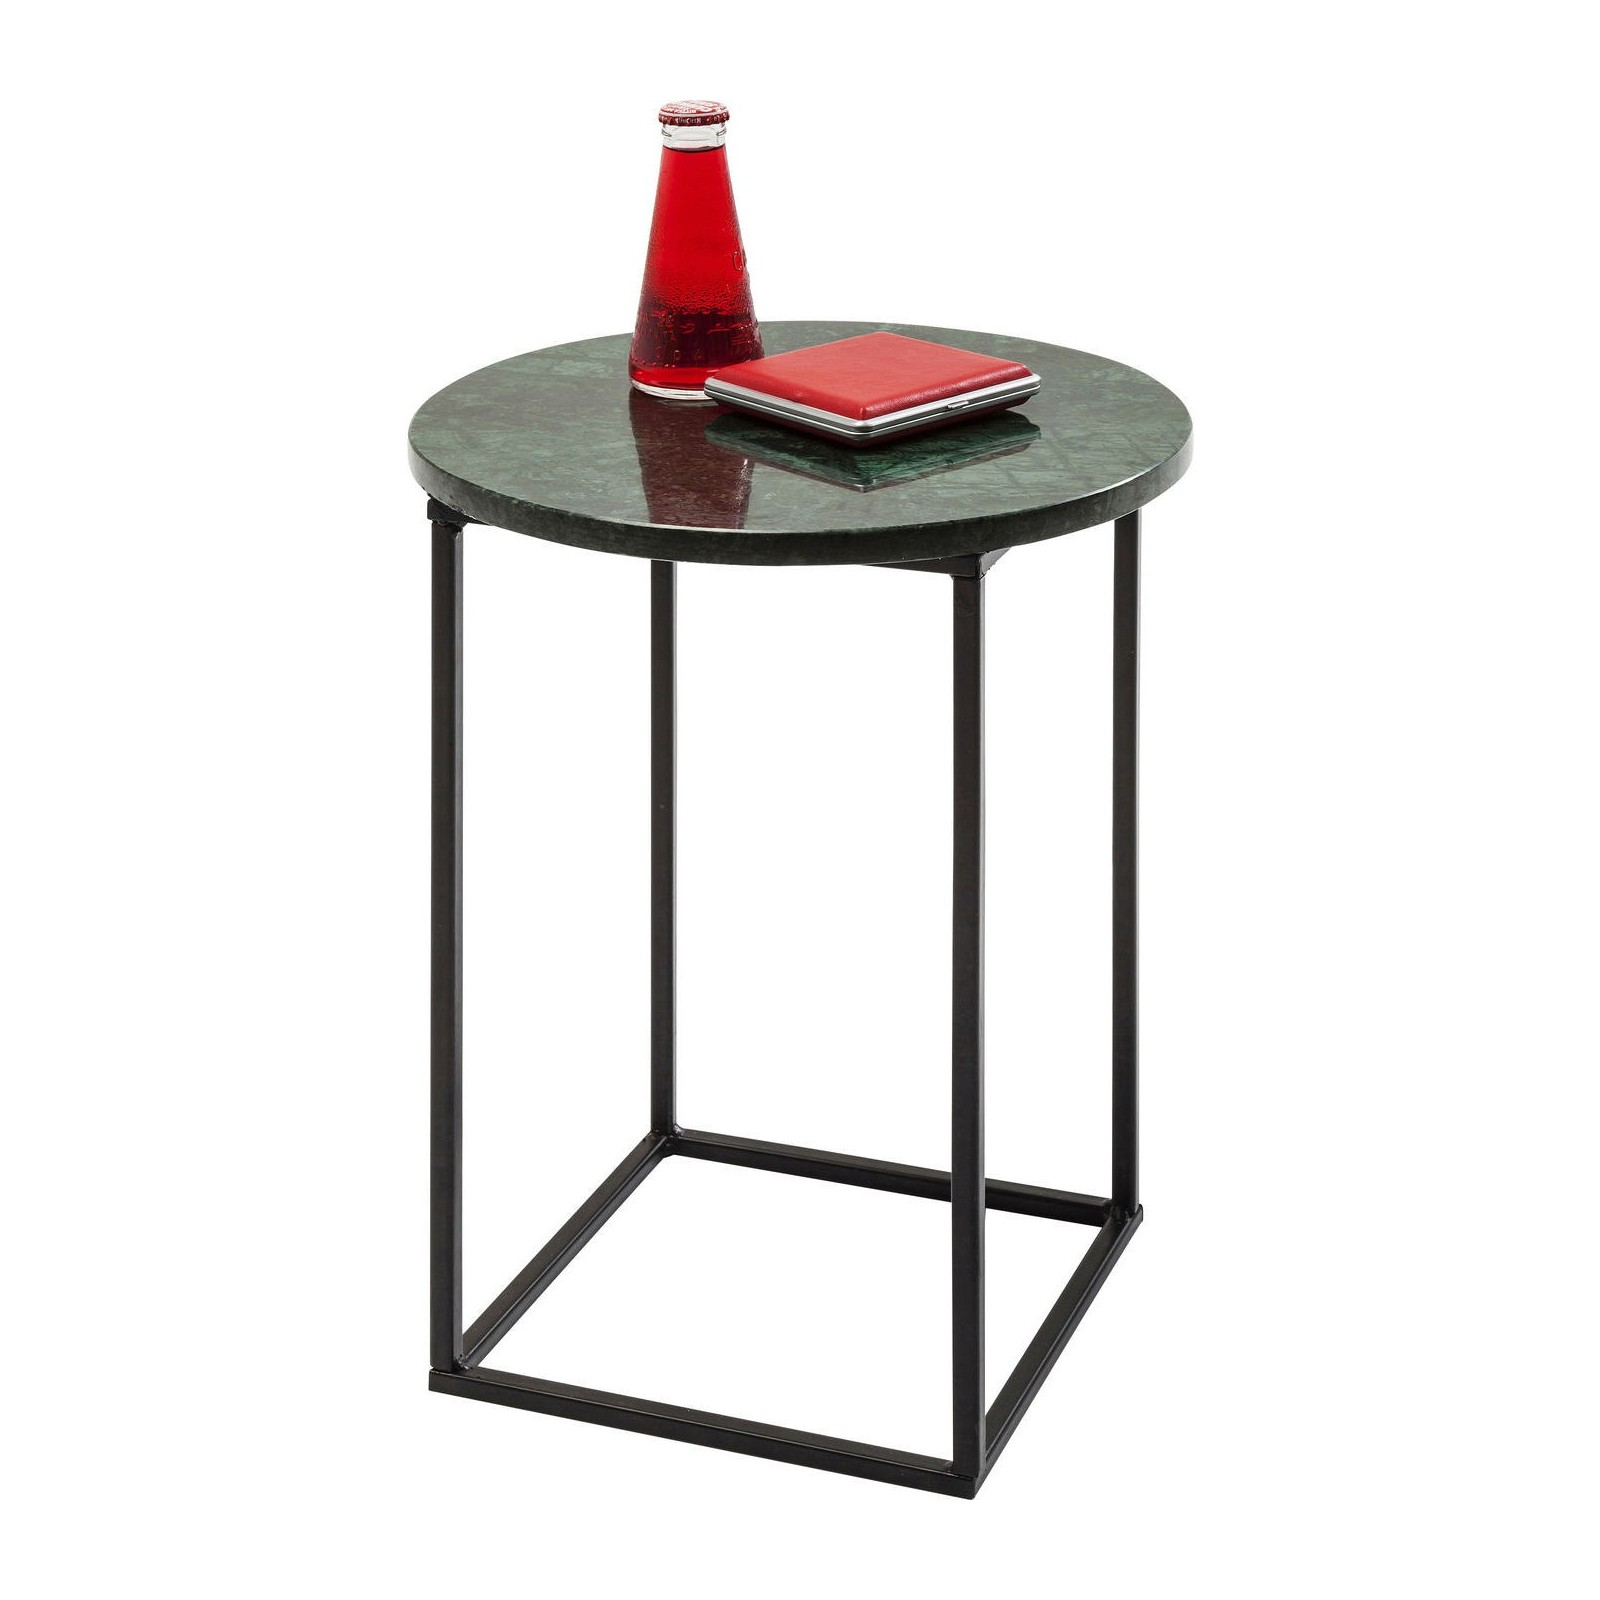 Table d 39 appoint fjord verte 30x30cm kare design - Tables d appoint design ...